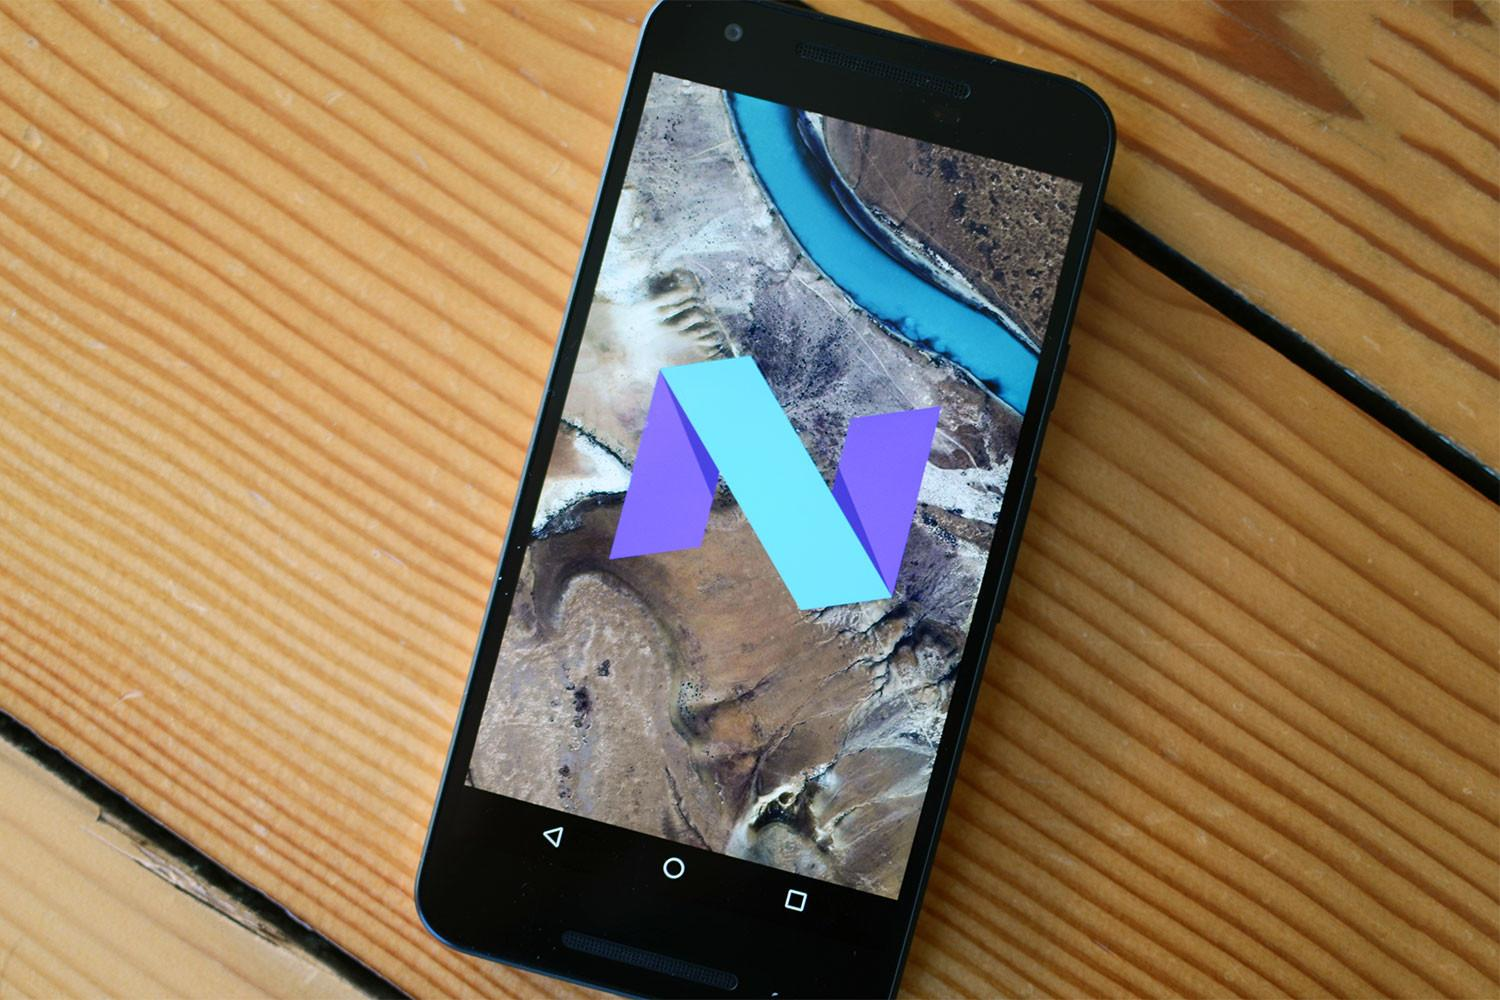 Get the most out of Android 7.0 Nougat with these tips and tricks